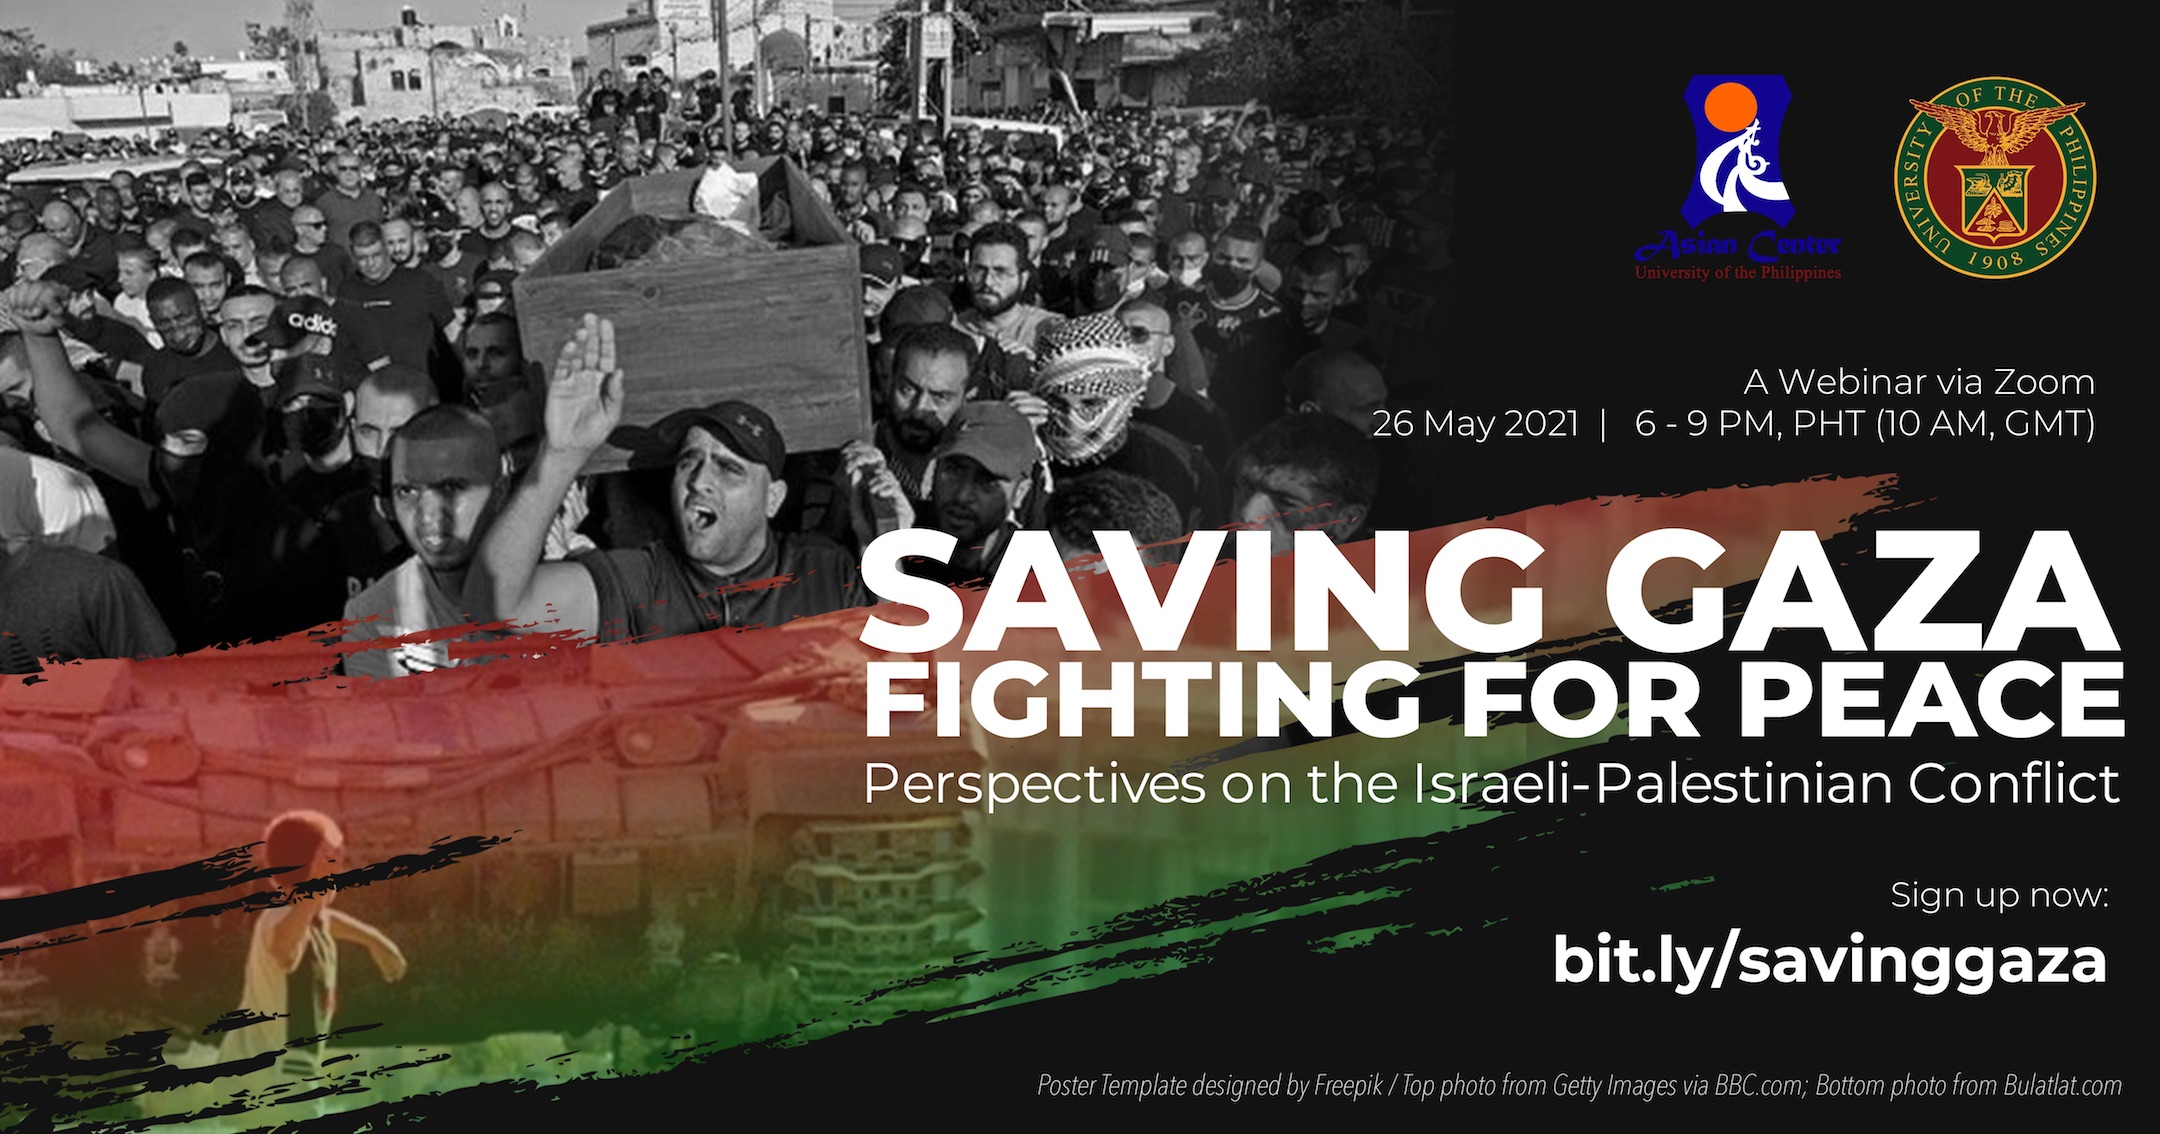 Saving Gaza, Fighting for Peace: Perspectives on the Israeli-Palestinian Conflict  |  A Webinar (26 May 2021)